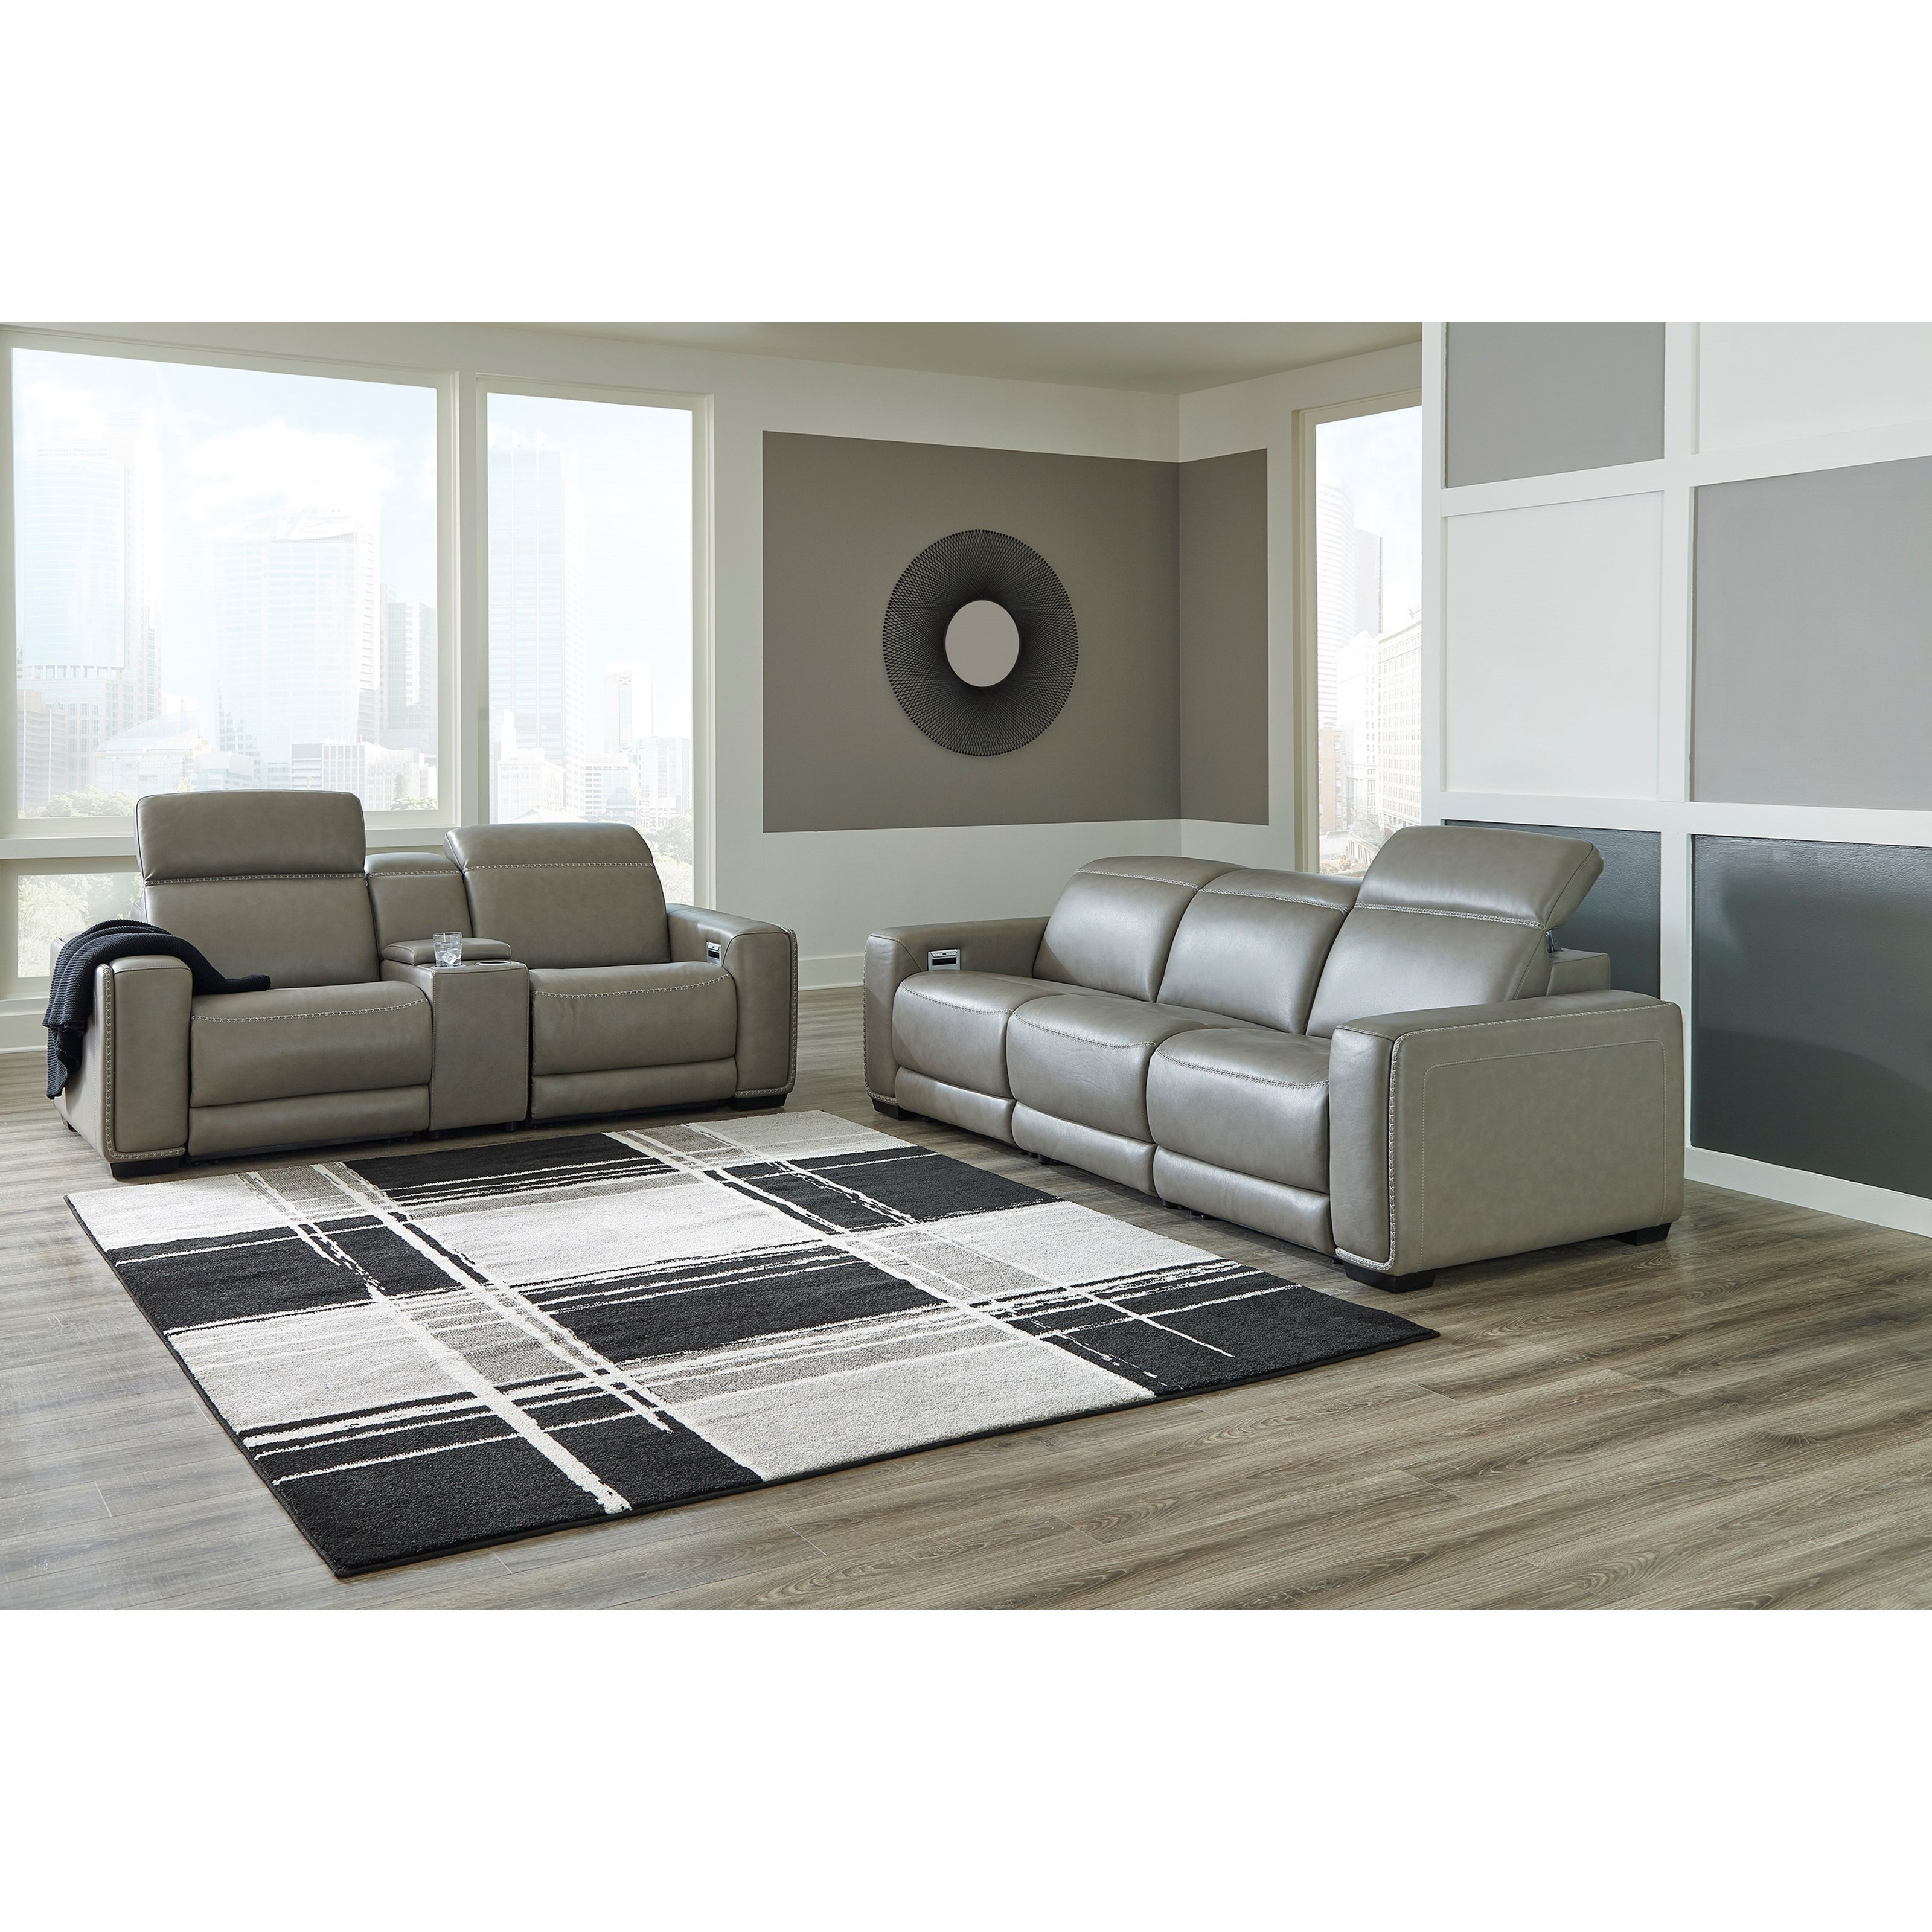 Correze Power Reclining Living Room Group by Ashley (Signature Design) at Johnny Janosik